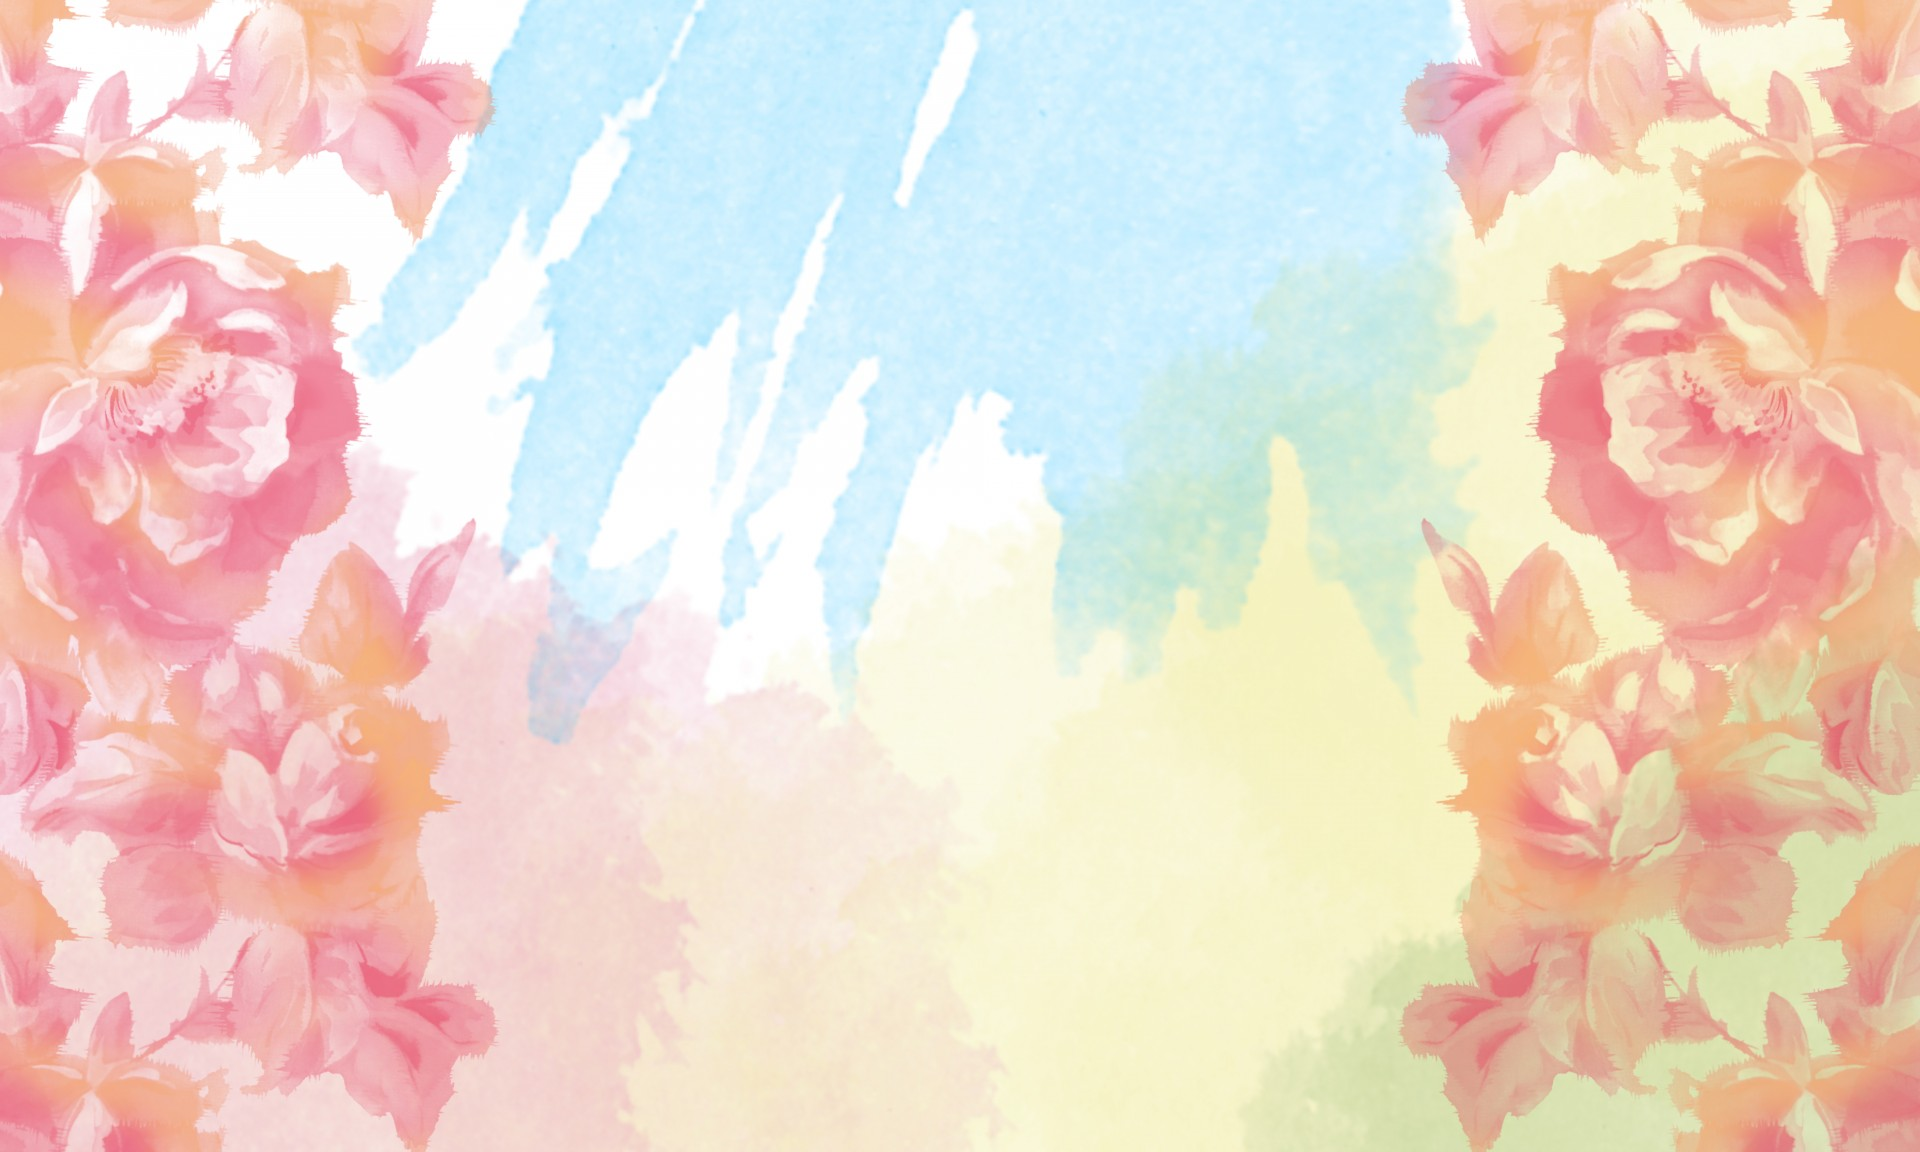 Floral rose watercolor background